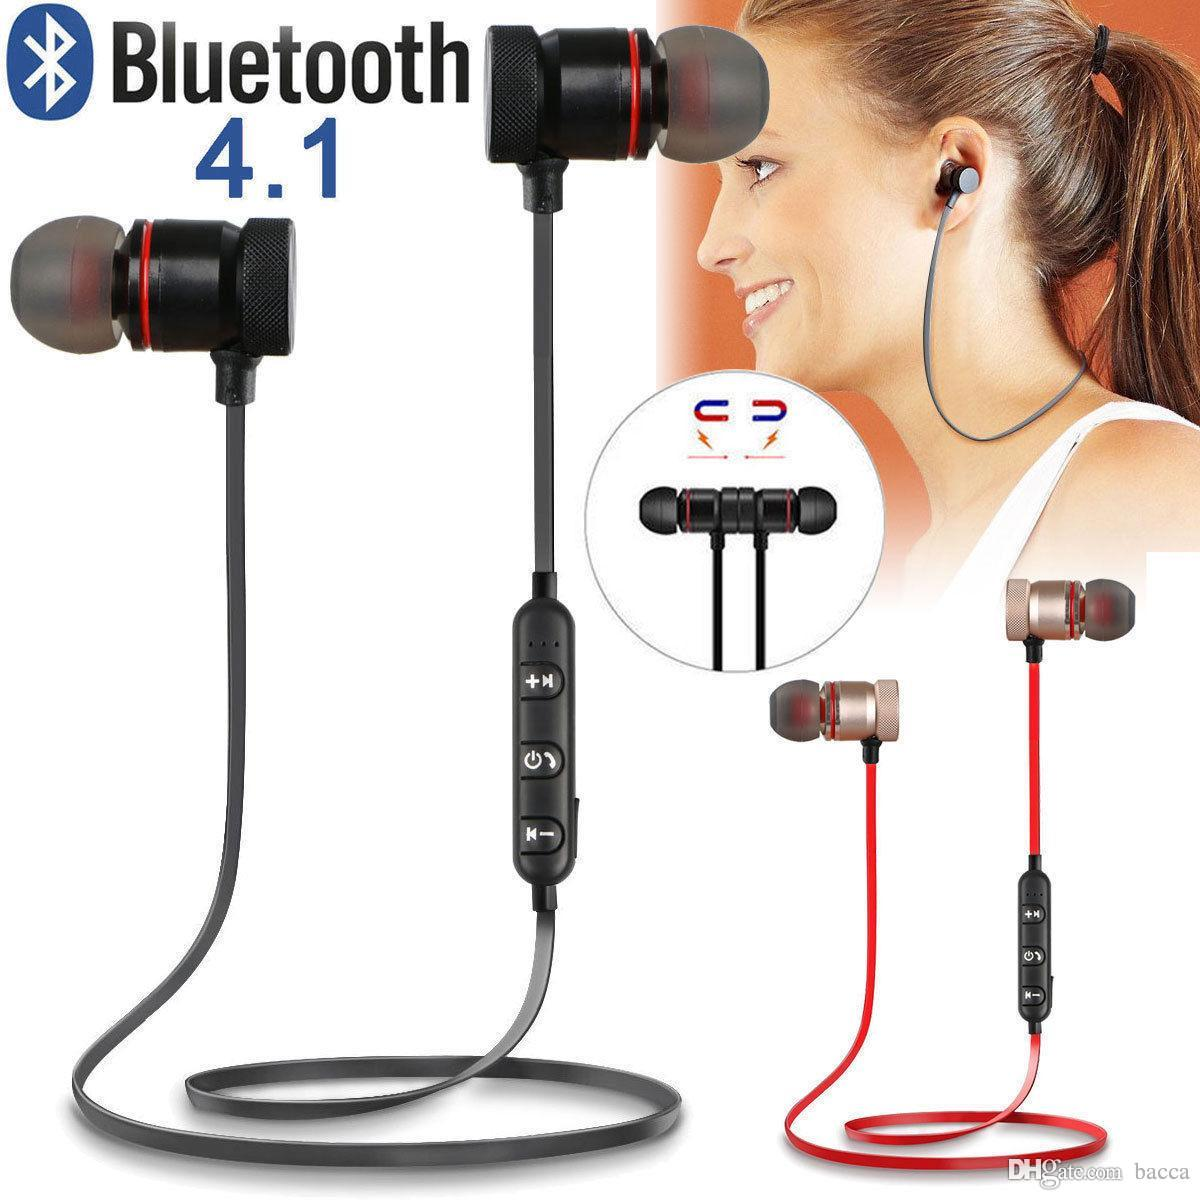 Music Magnet Metal Sports Bluetooth Earphones Stereo Wireless Earbuds Headset With Mic for Phones xiaomi Huawei Mobile Phones